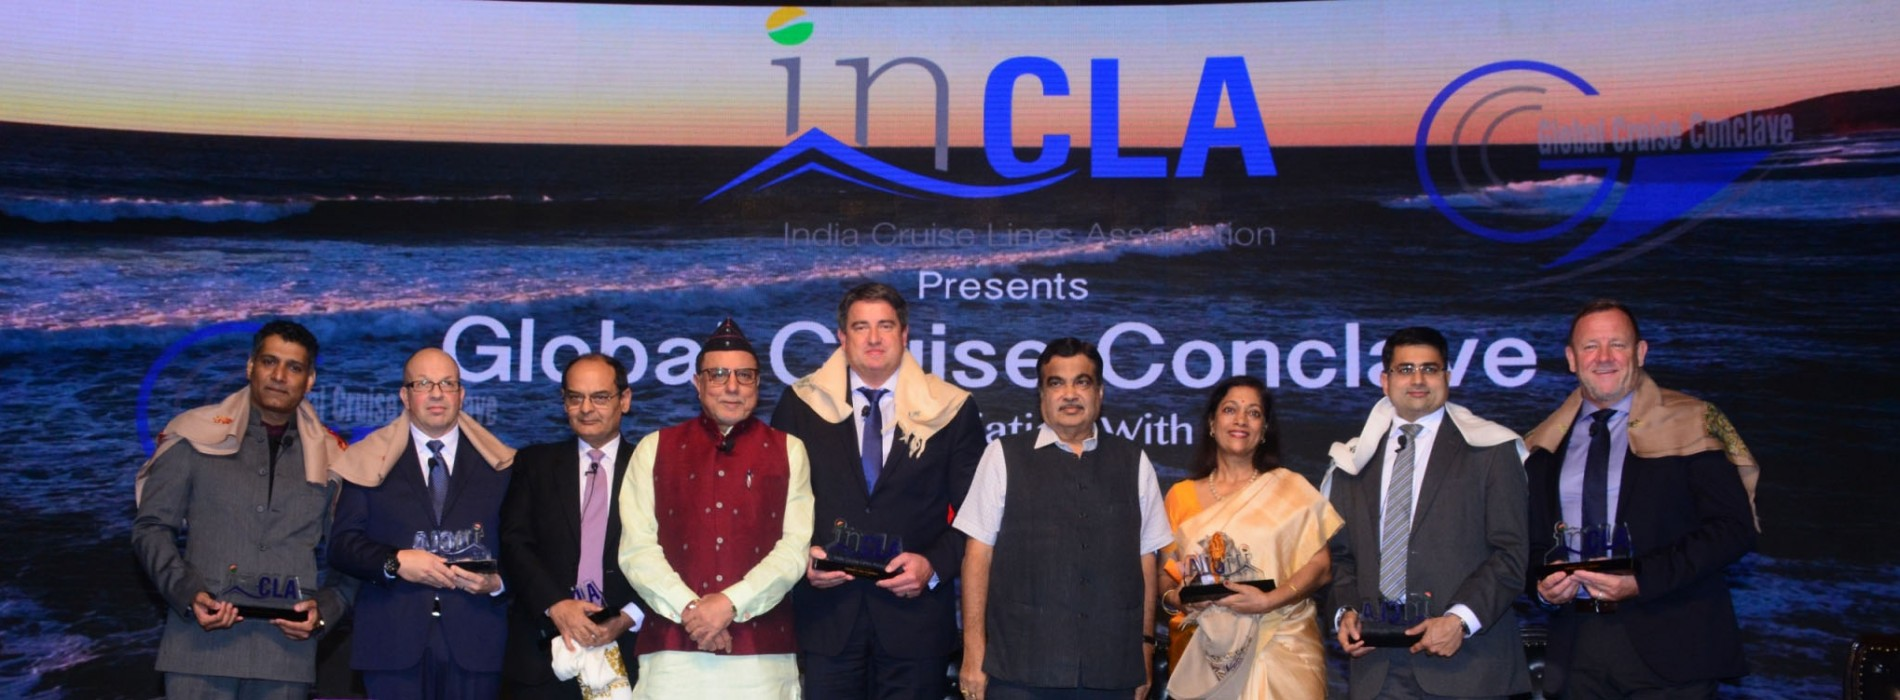 "India Cruise Lines Association presents White Paper on ""Recommendations for Indian Cruise Industry"""